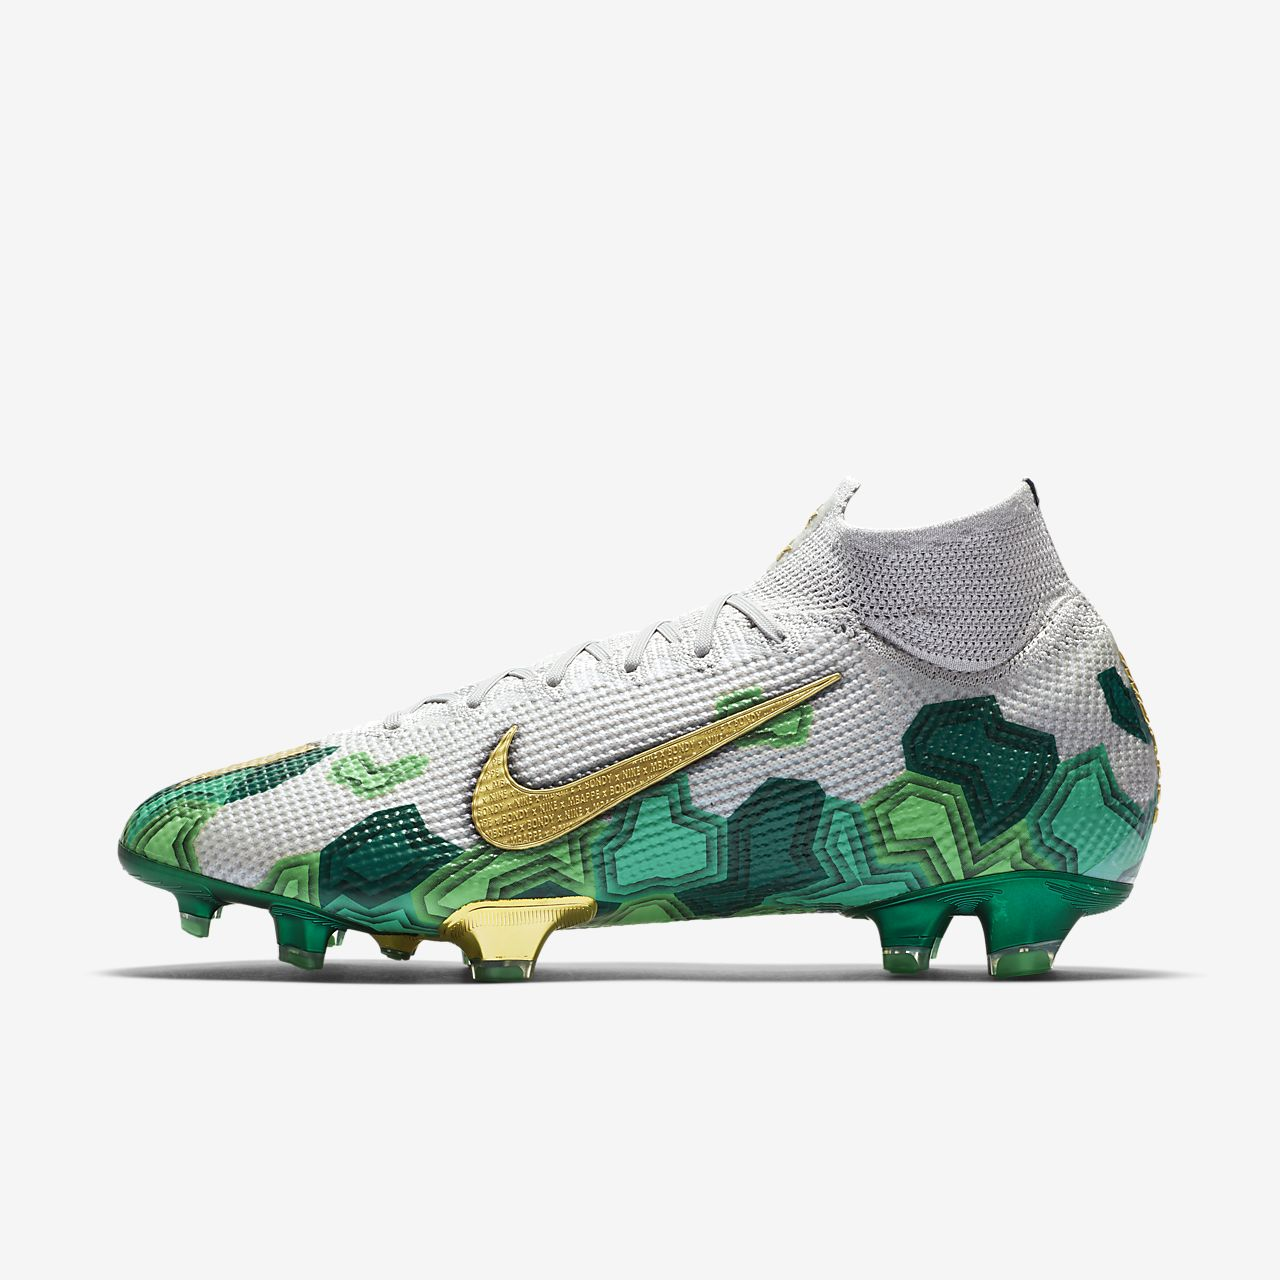 Nike Mercurial Superfly 7 Elite SE FG Firm Ground Football Boot